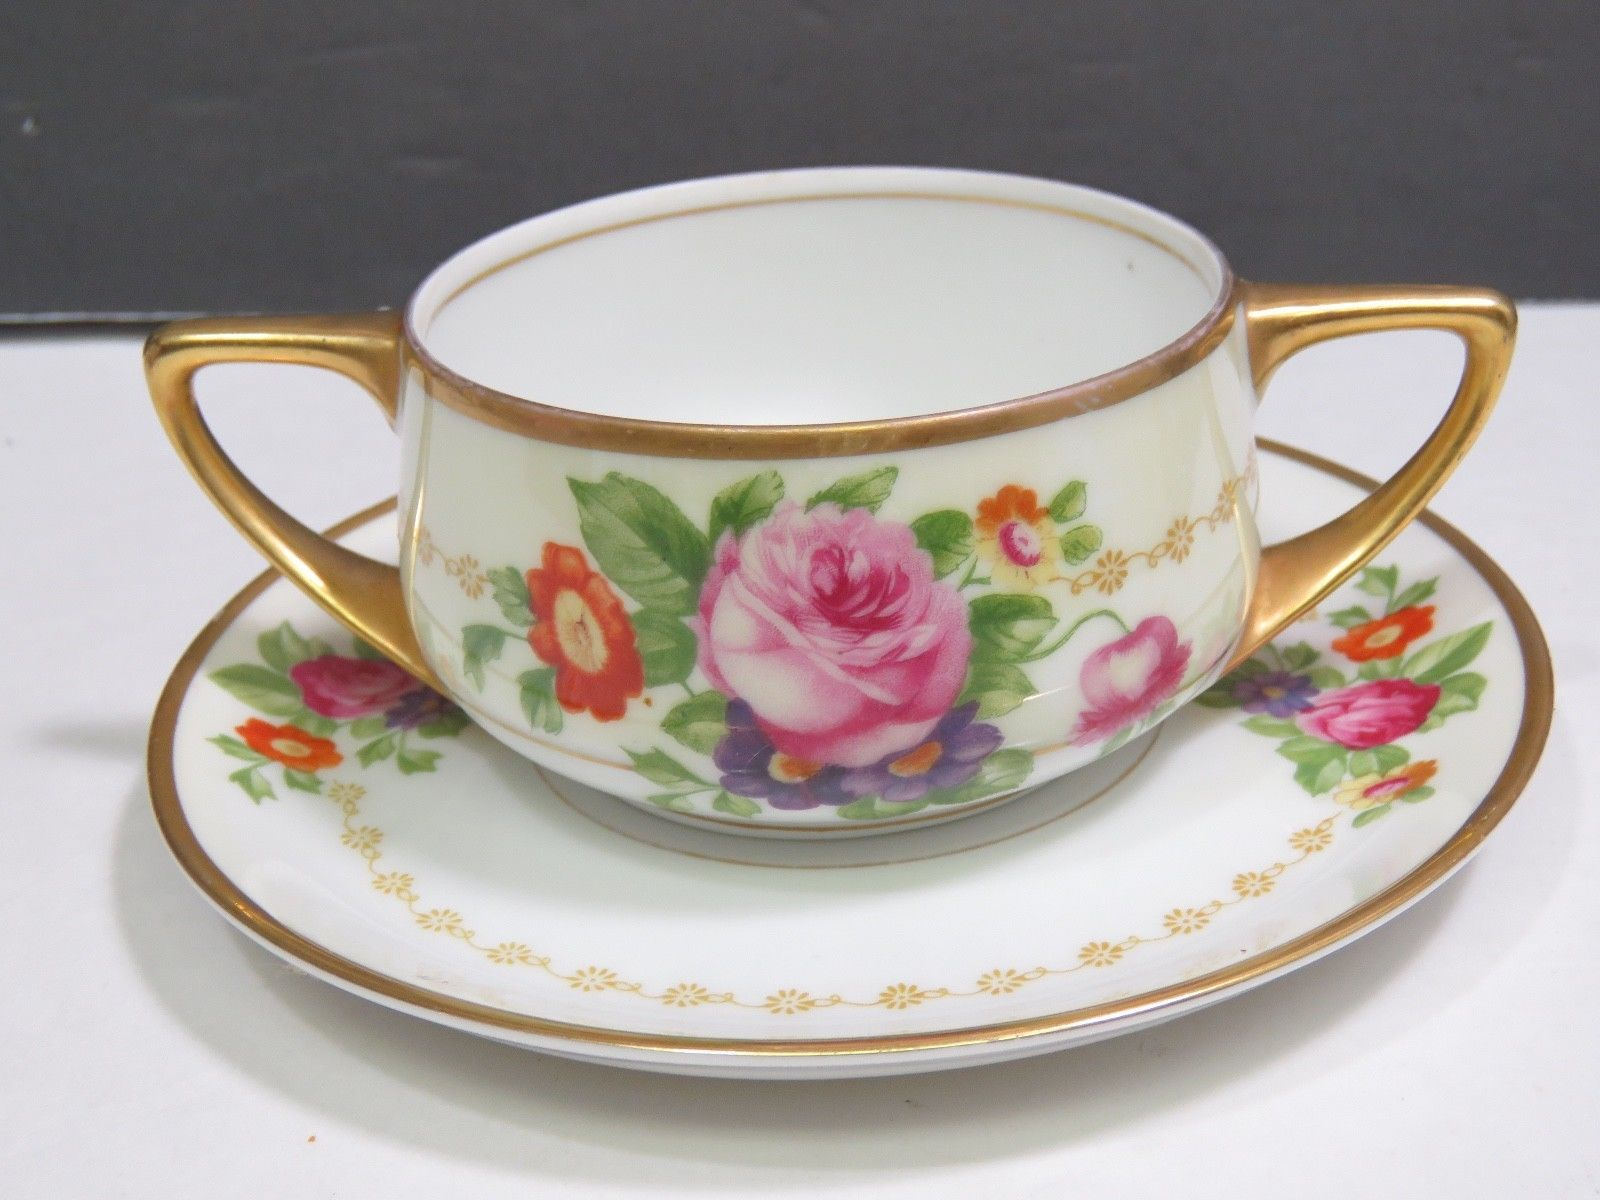 Primary image for Rosenthal Selb Bavaria Donatello Double Handle Cream Soup Bouillon Cup Saucer